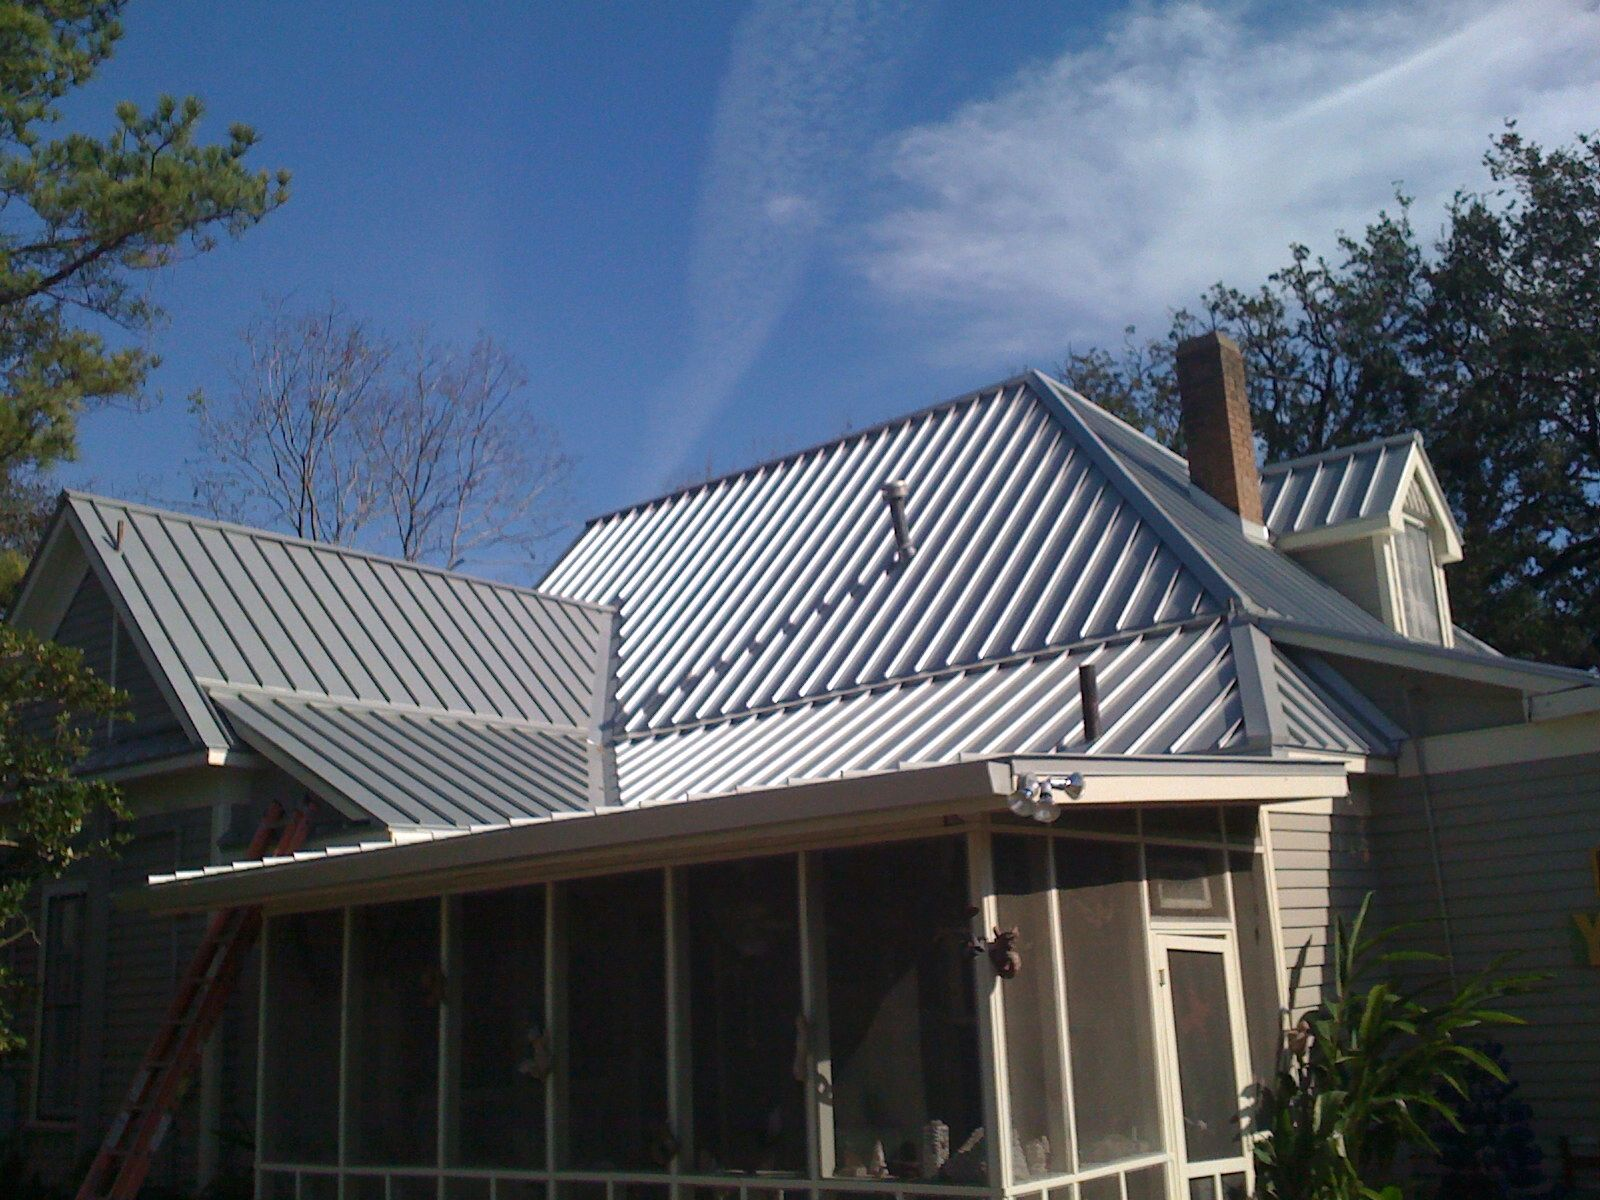 24 Gauge Silver Metallic Standing Seam Metal Roof